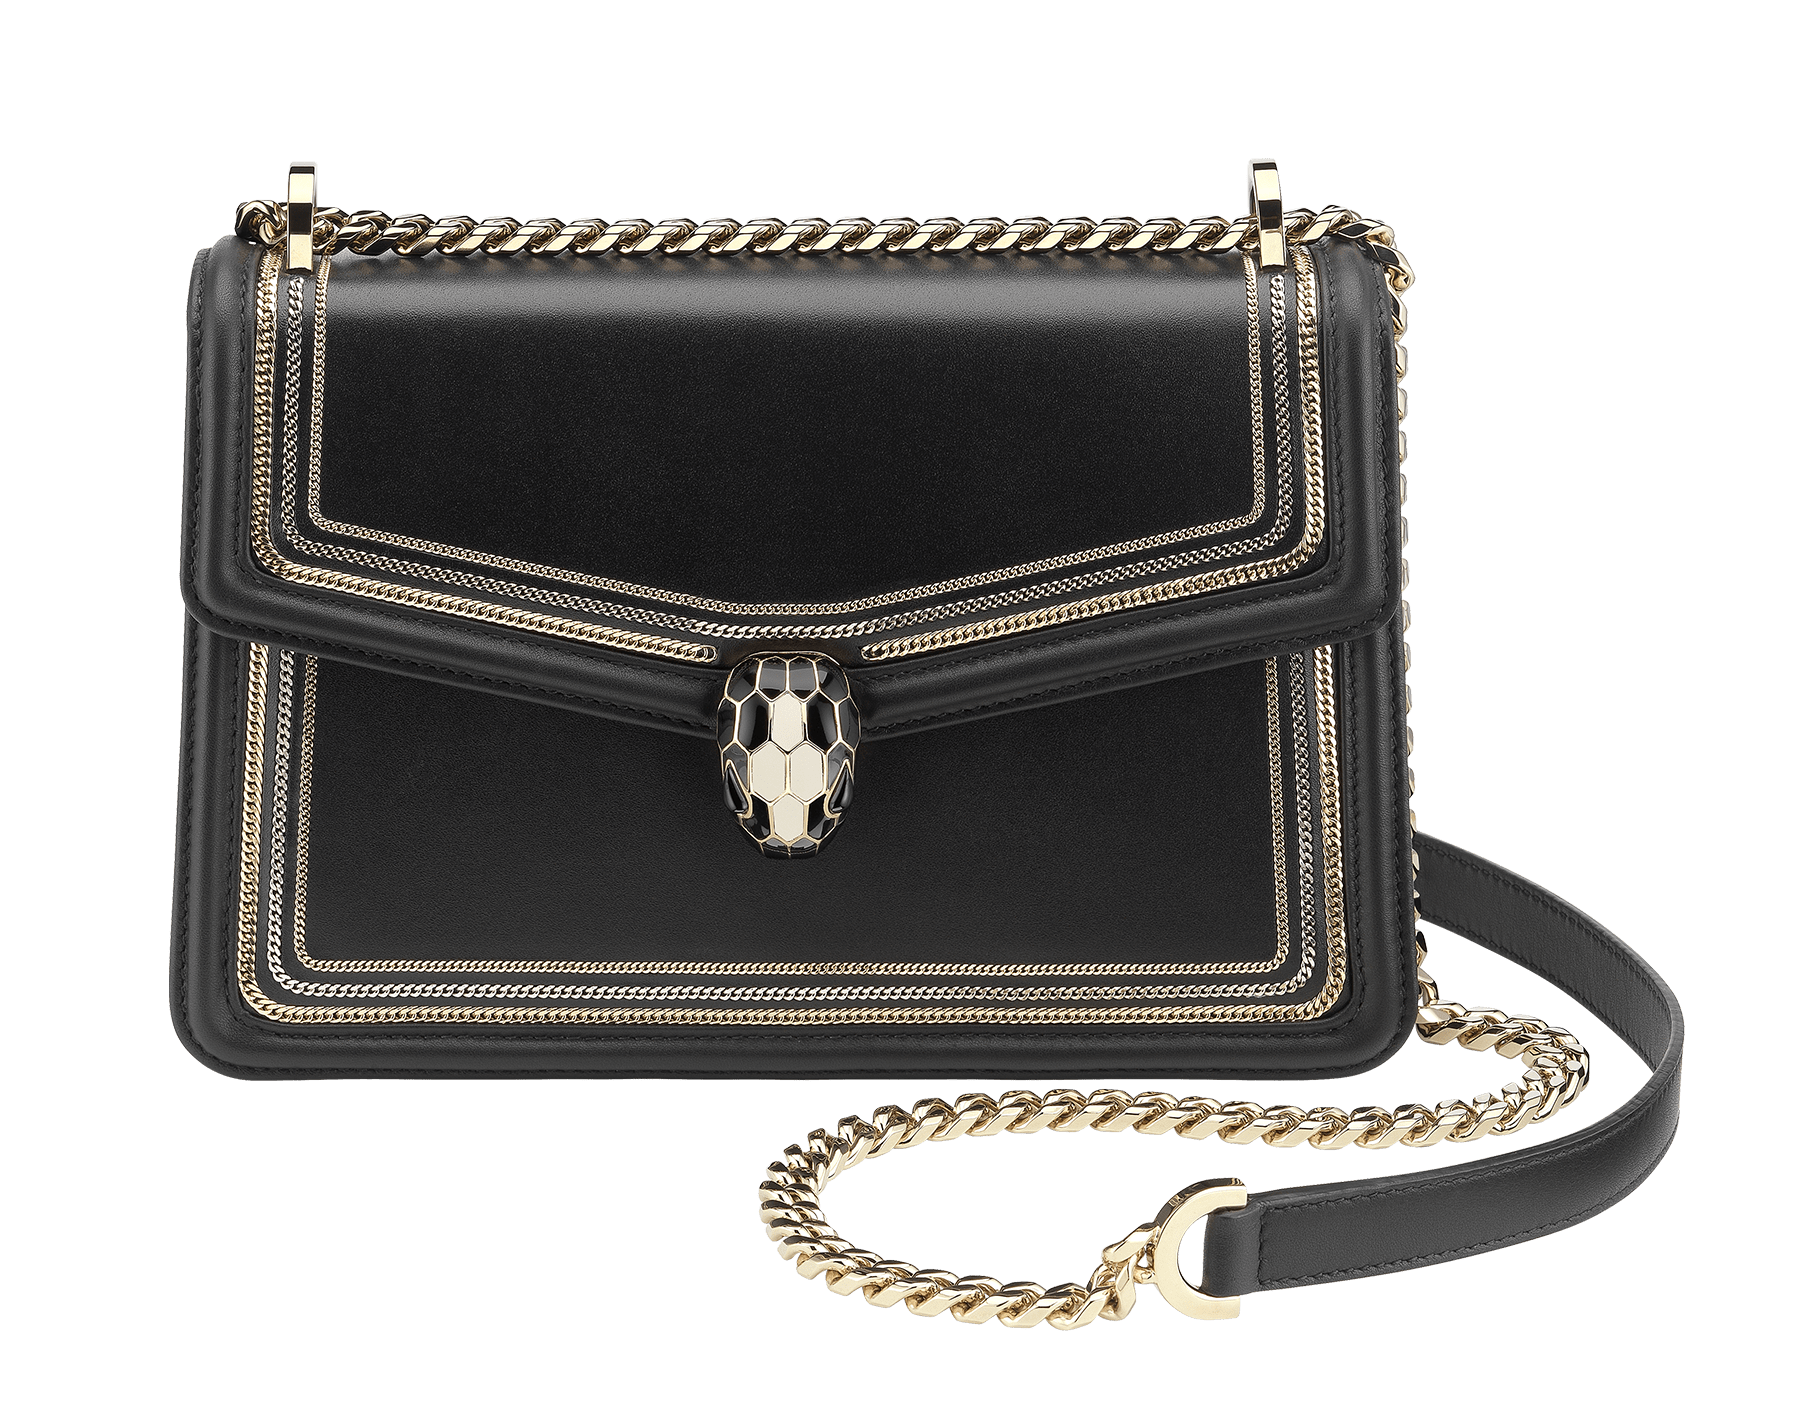 """Serpenti Diamond Blast"" shoulder bag in black smooth calf leather, featuring a 3-Chain motif in light gold and palladium finishing. Iconic snakehead closure in light gold plated brass enriched with black and white enamel and black onyx eyes 287465 image 1"